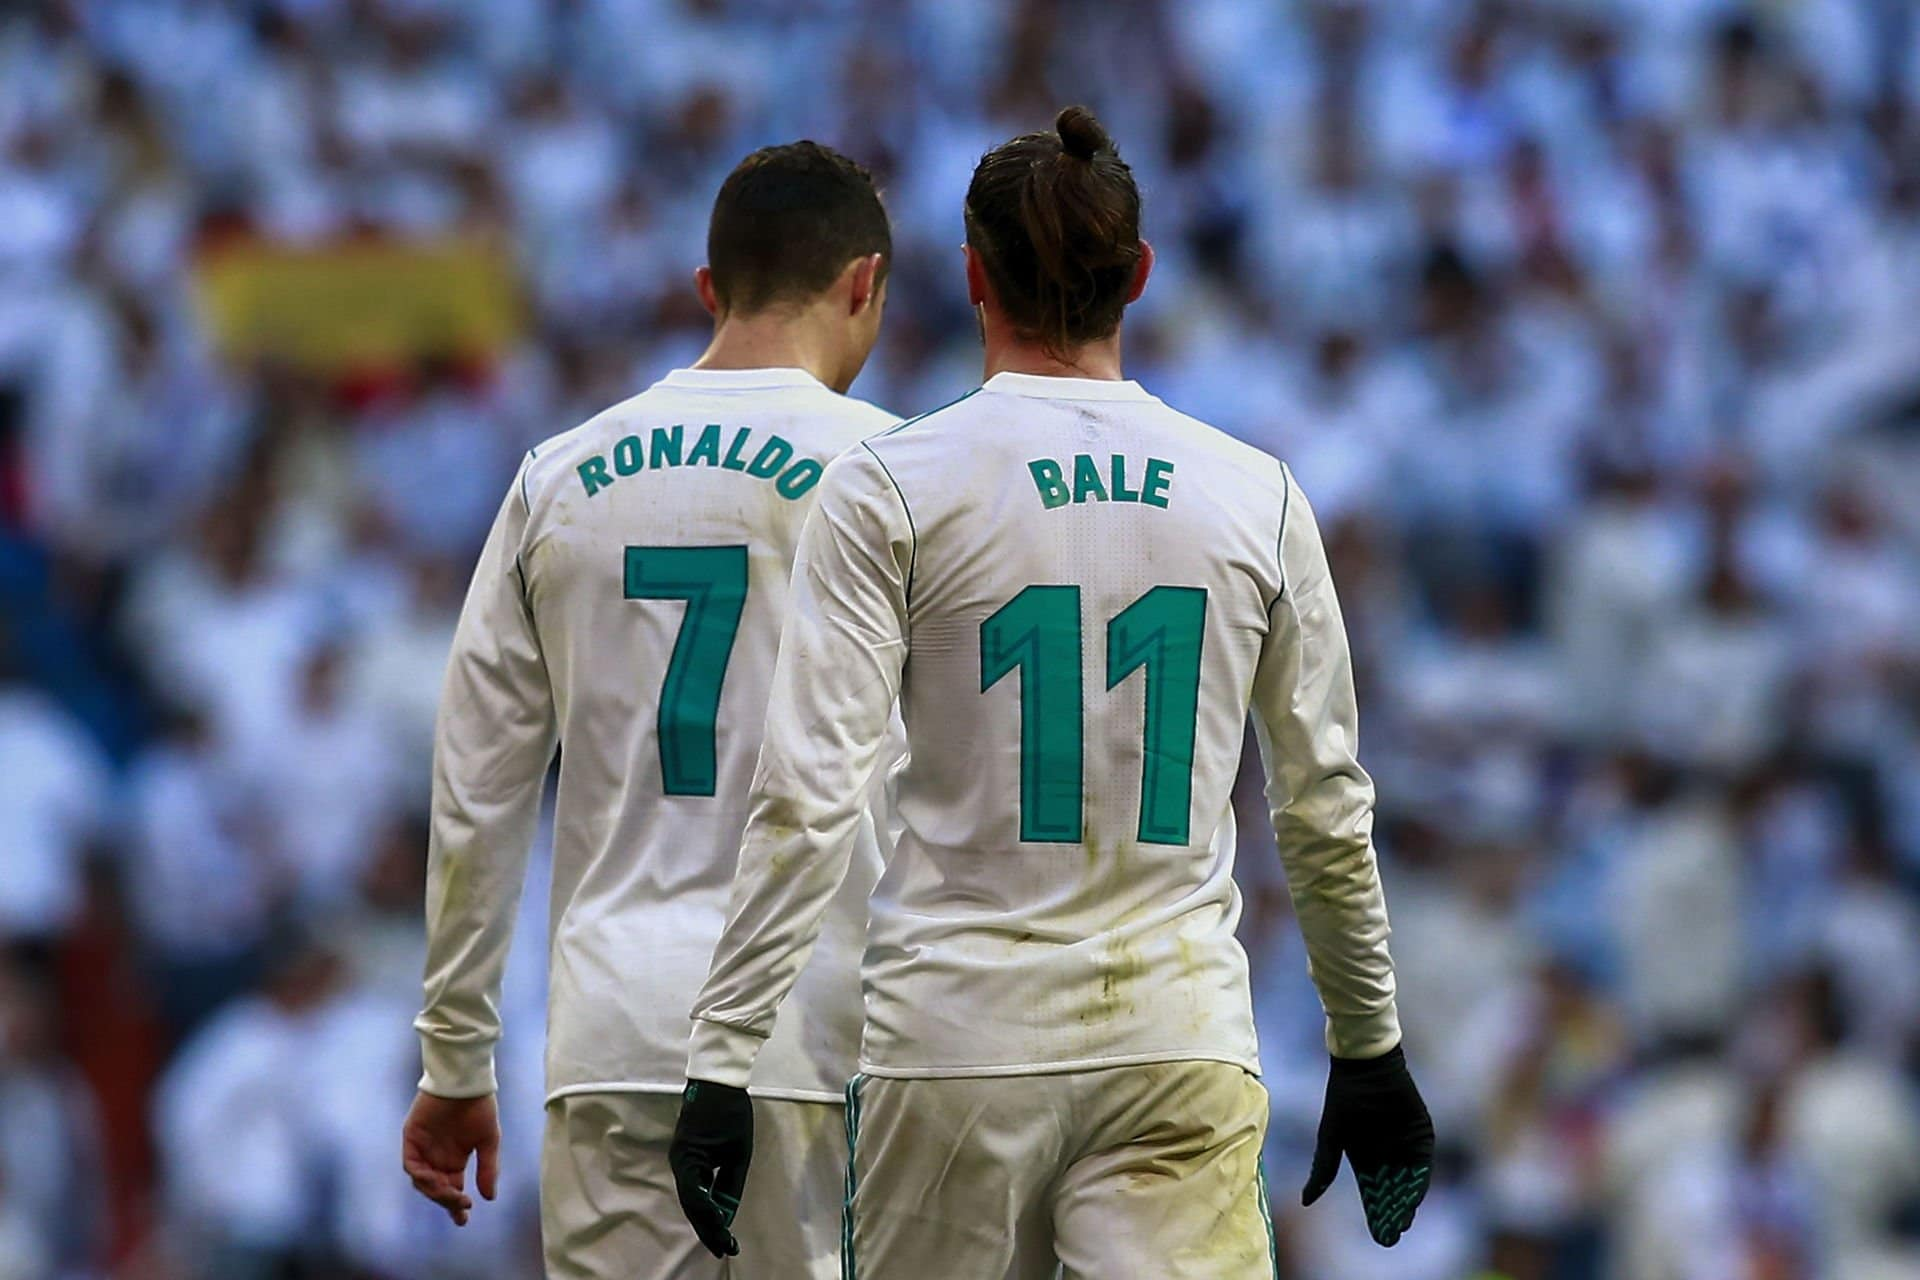 gareth-bale-has-excellent-made-his-opinion-on-cristiano-ronaldo-abundantly-decided.jpg